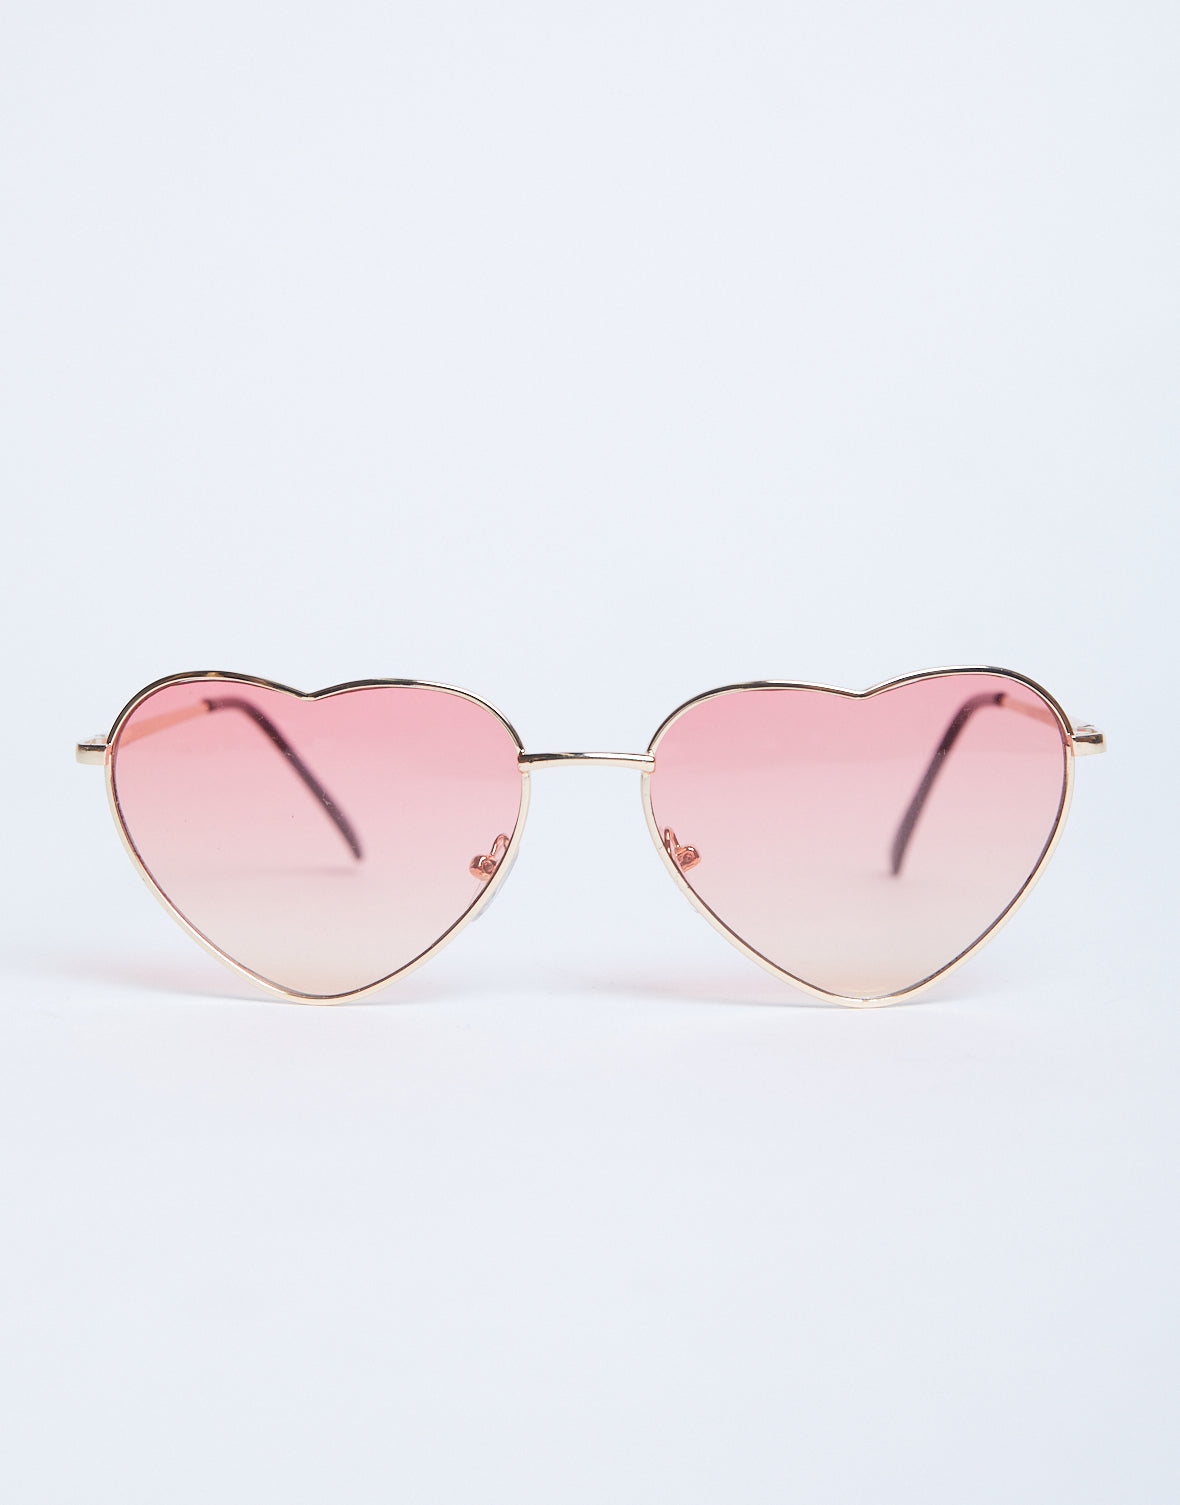 With All My Heart Sunglasses